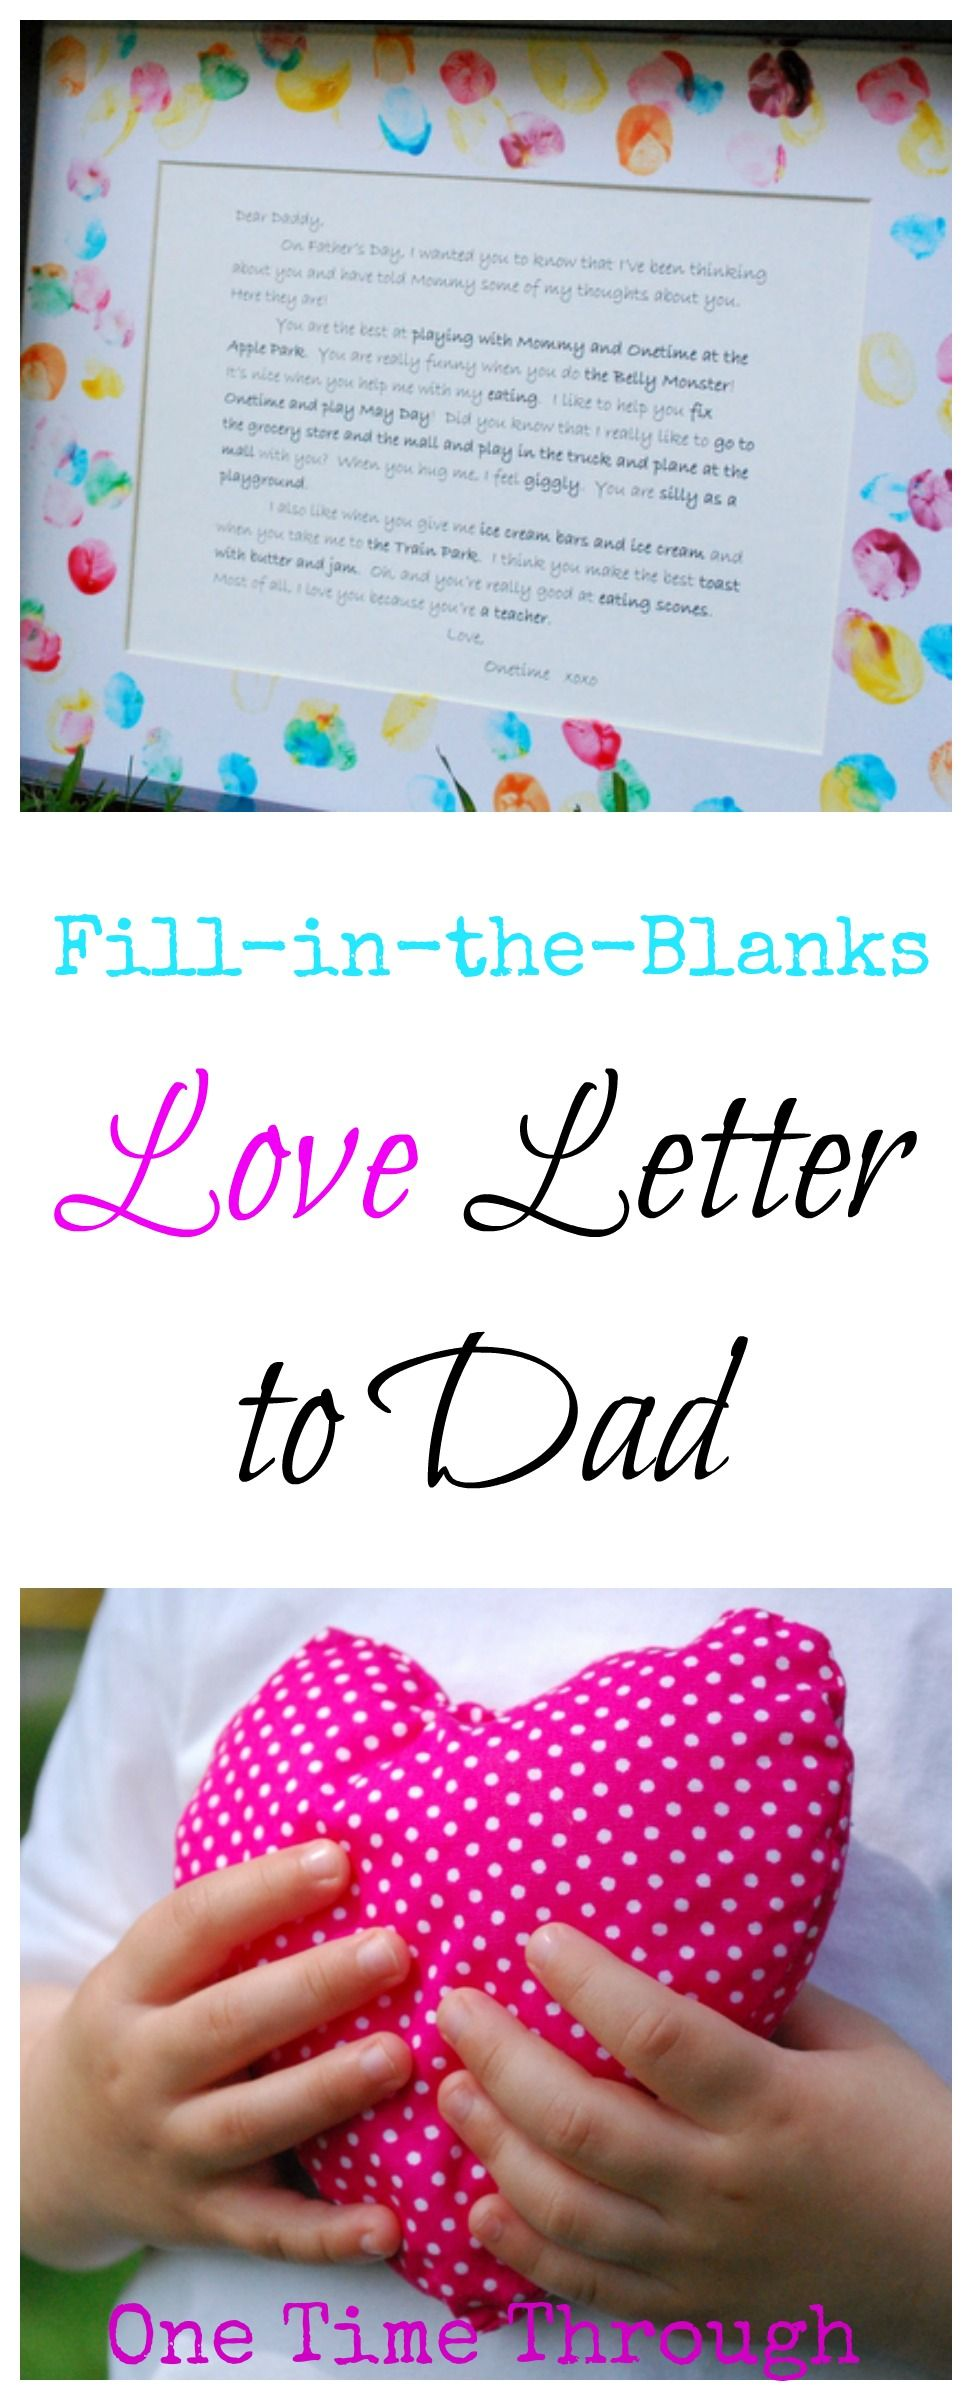 Love Letter to Dad for Fathers Day  Children writing Youngest